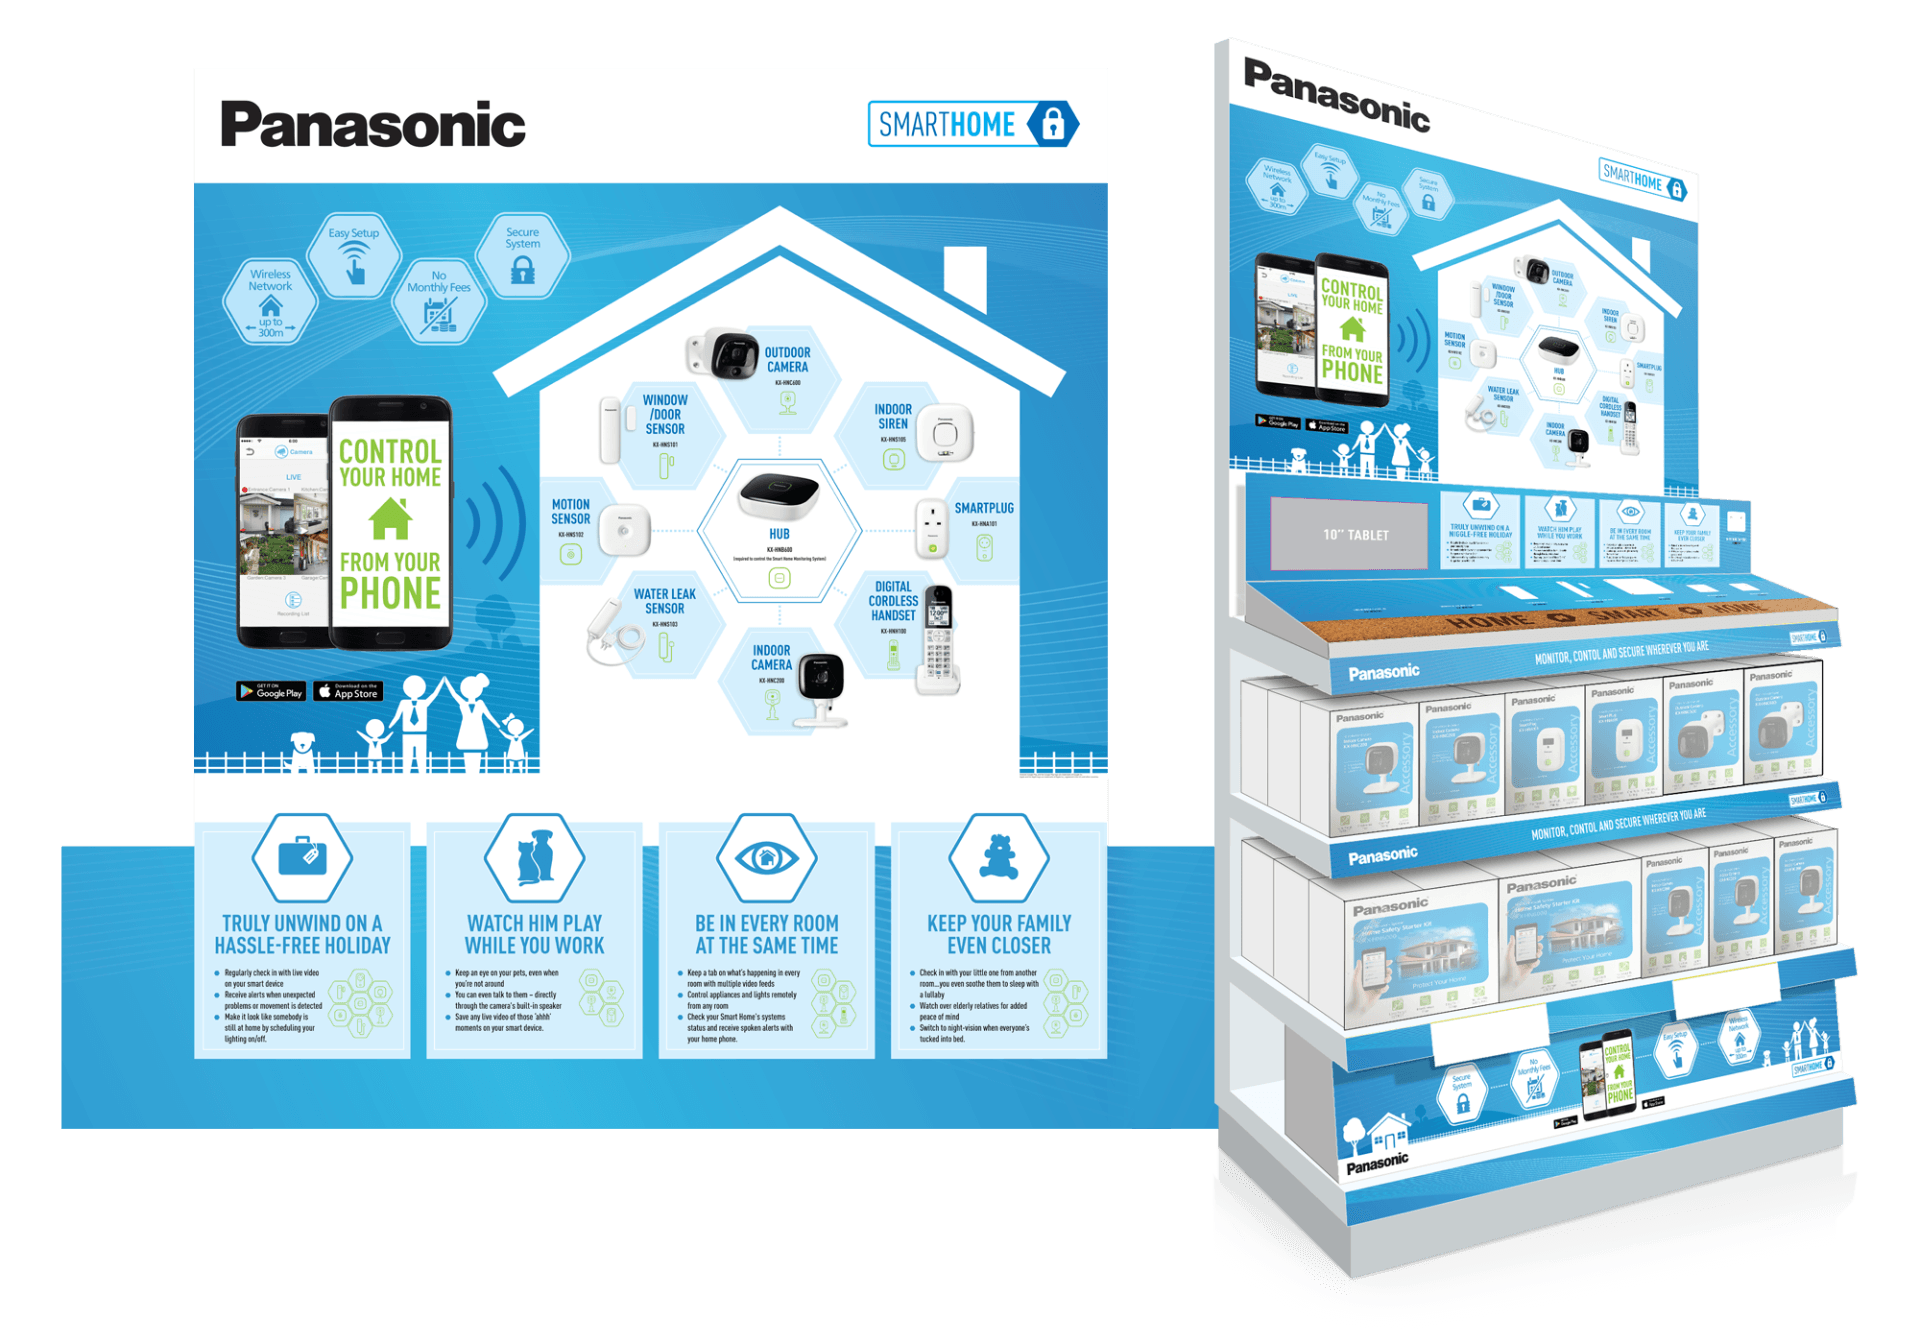 Case Study - Back to Home Truths with Panasonic